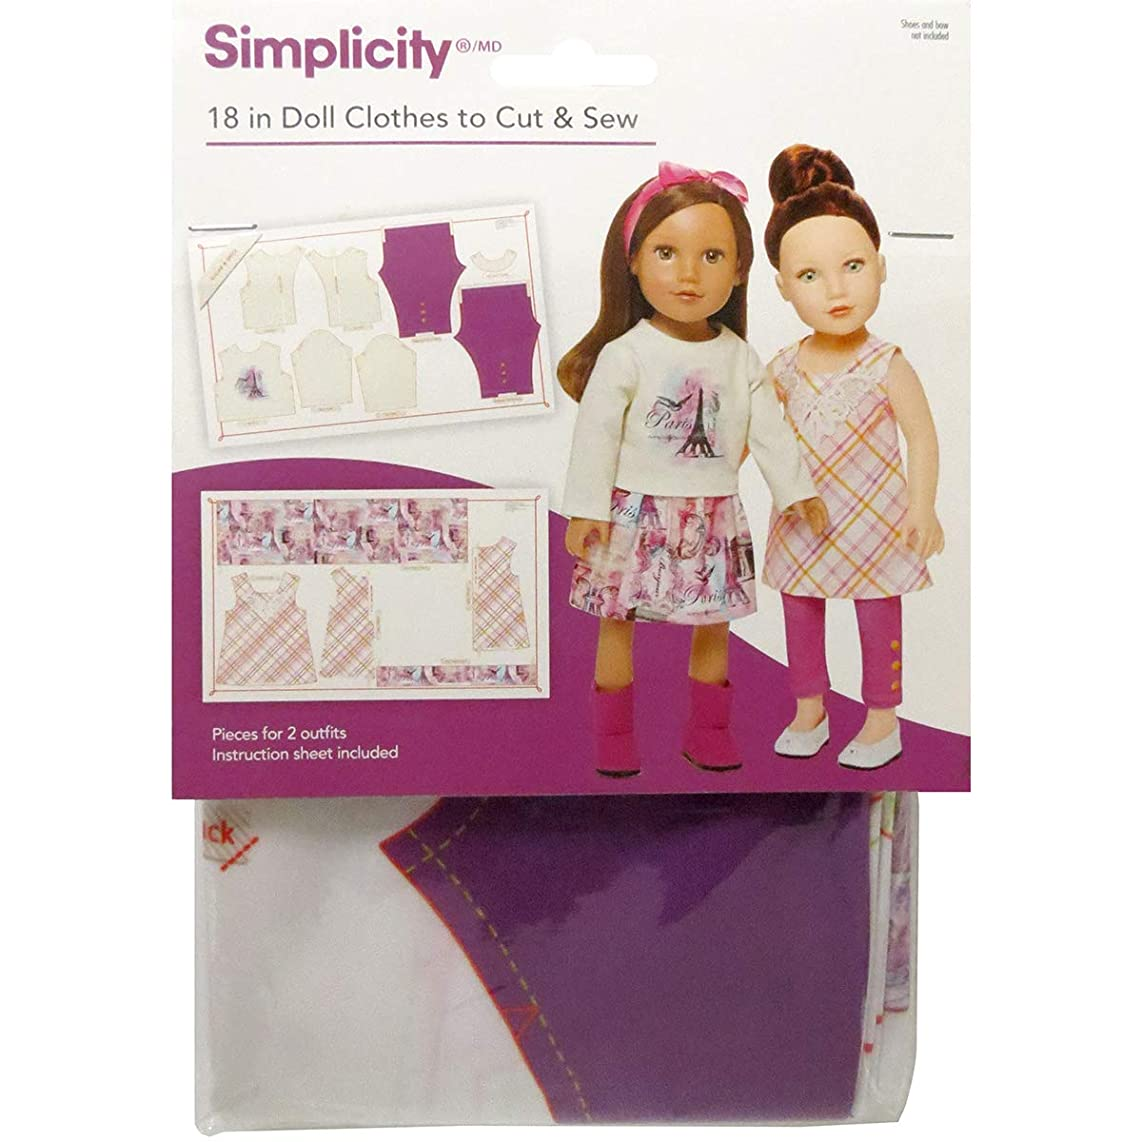 Wrights 50281200 Simplicity 18